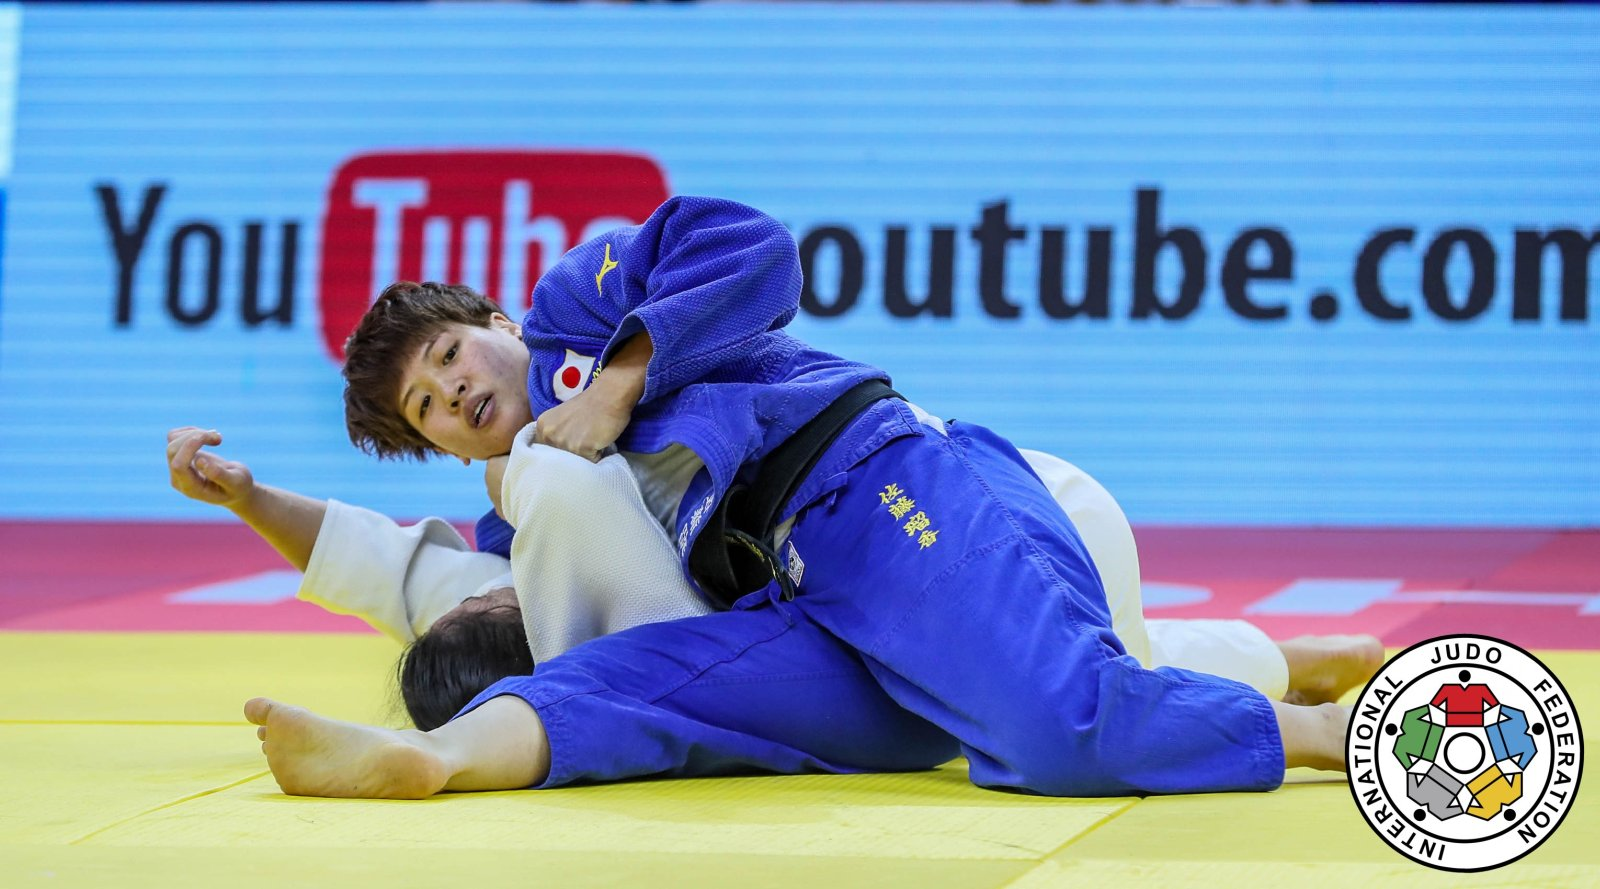 20180527_hohhotgp_ijf_day3_final_78_sato_ruika31